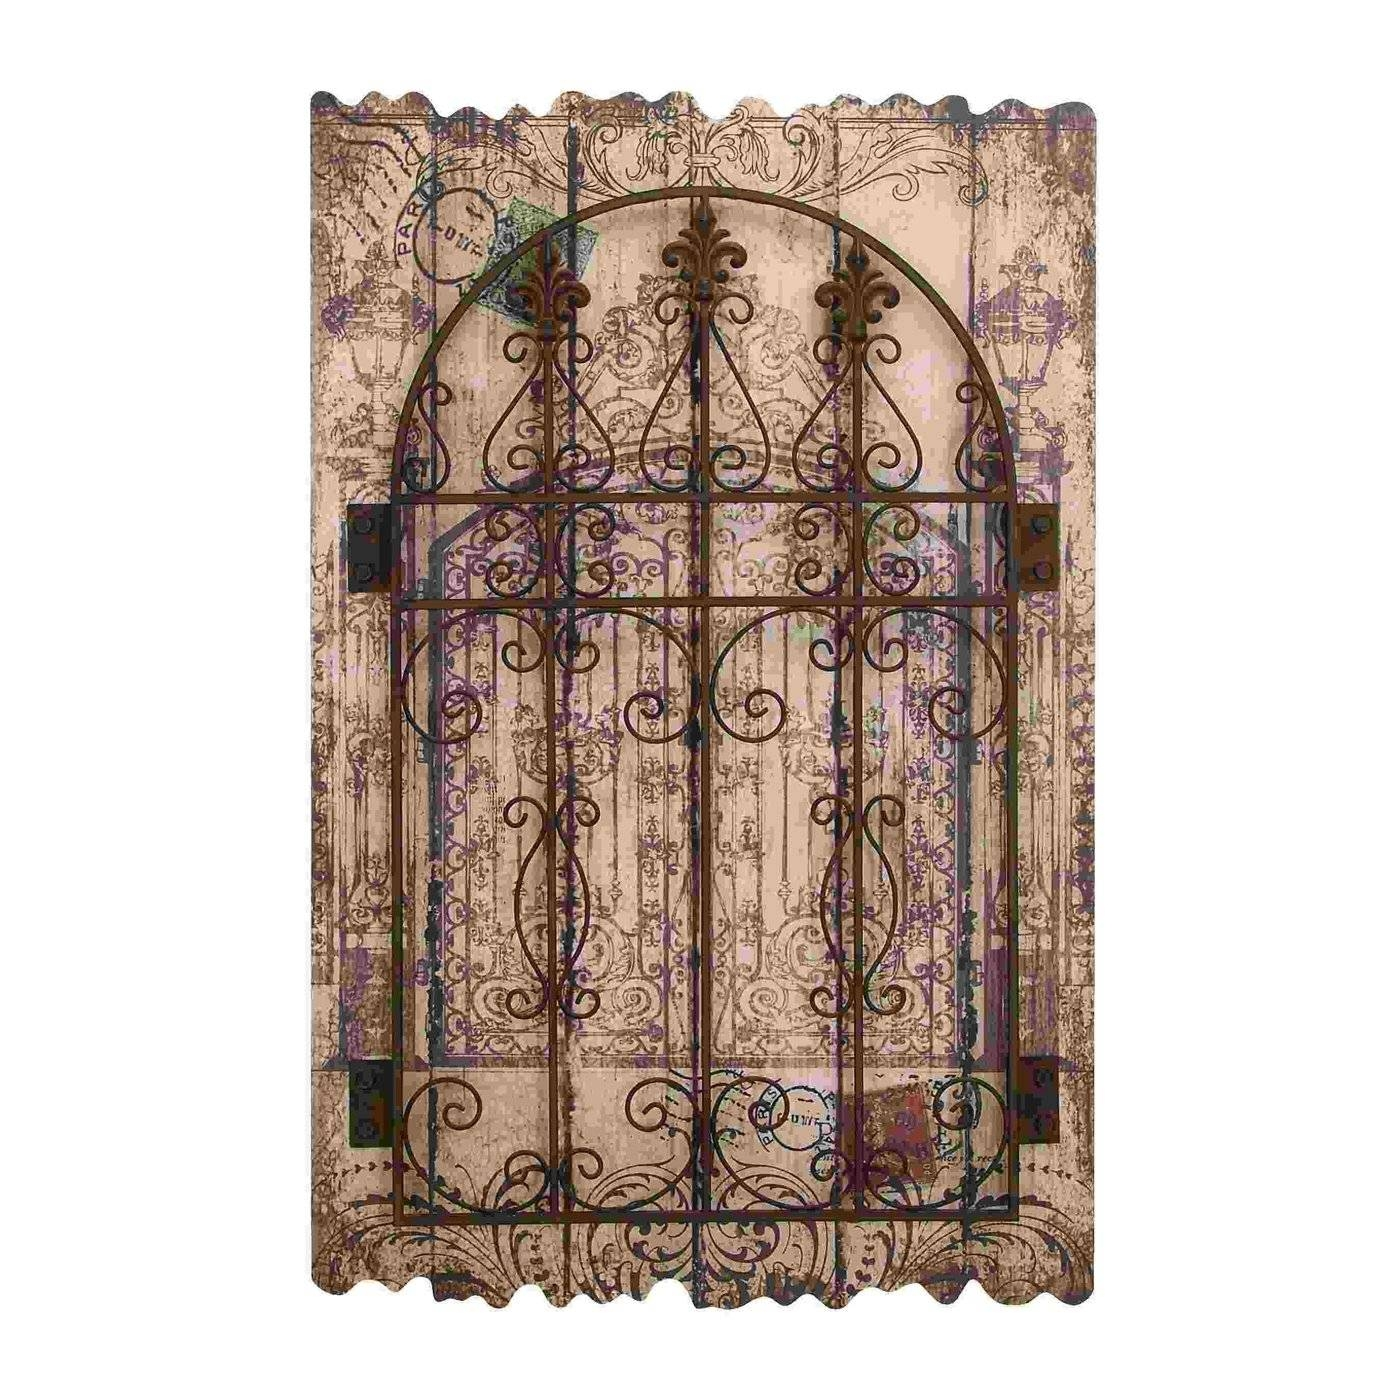 Wall Art Designs: Rustic Wood And Metal Wall Art Transitional In Recent Rustic Metal Wall Art (View 8 of 20)